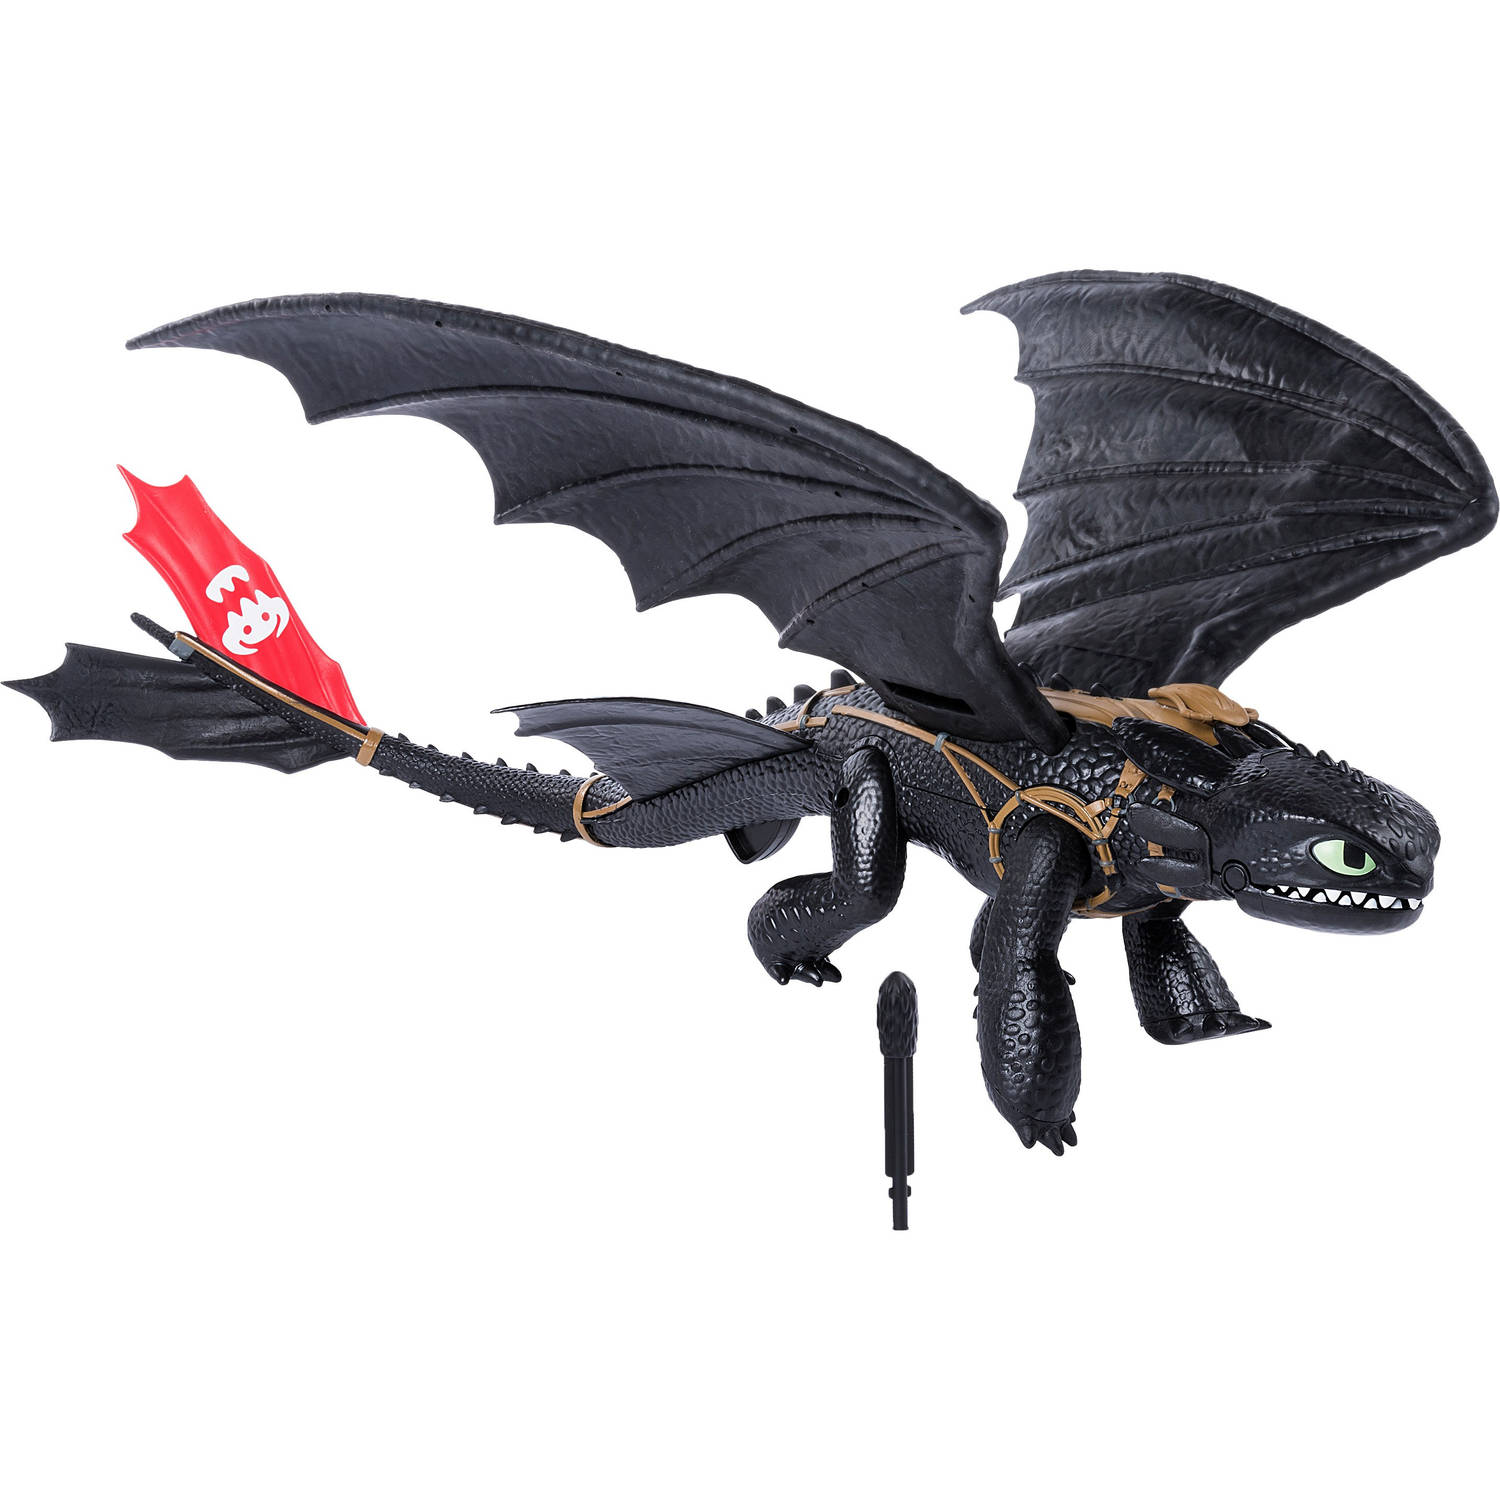 Dragons - Barrel Roll Toothless